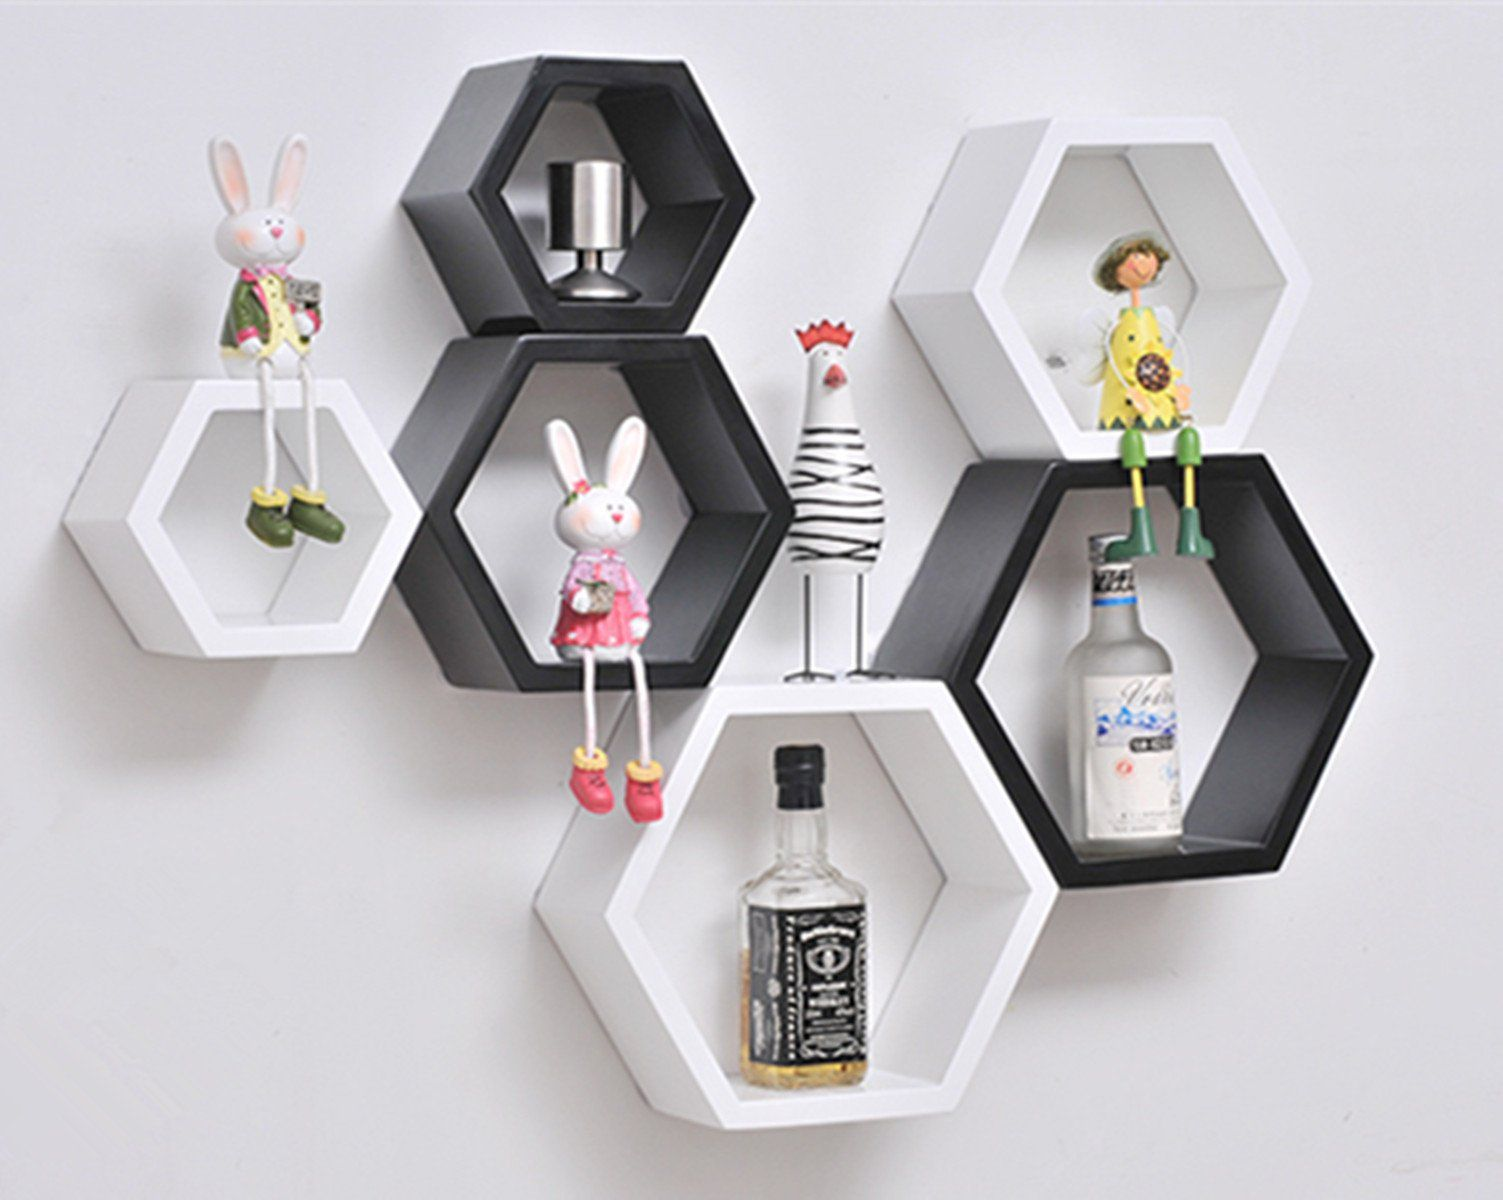 ZJchao DIY Decorative Wall Ornaments Floating Shelves Cube Storage Box For Living Room Or Bedroom 3